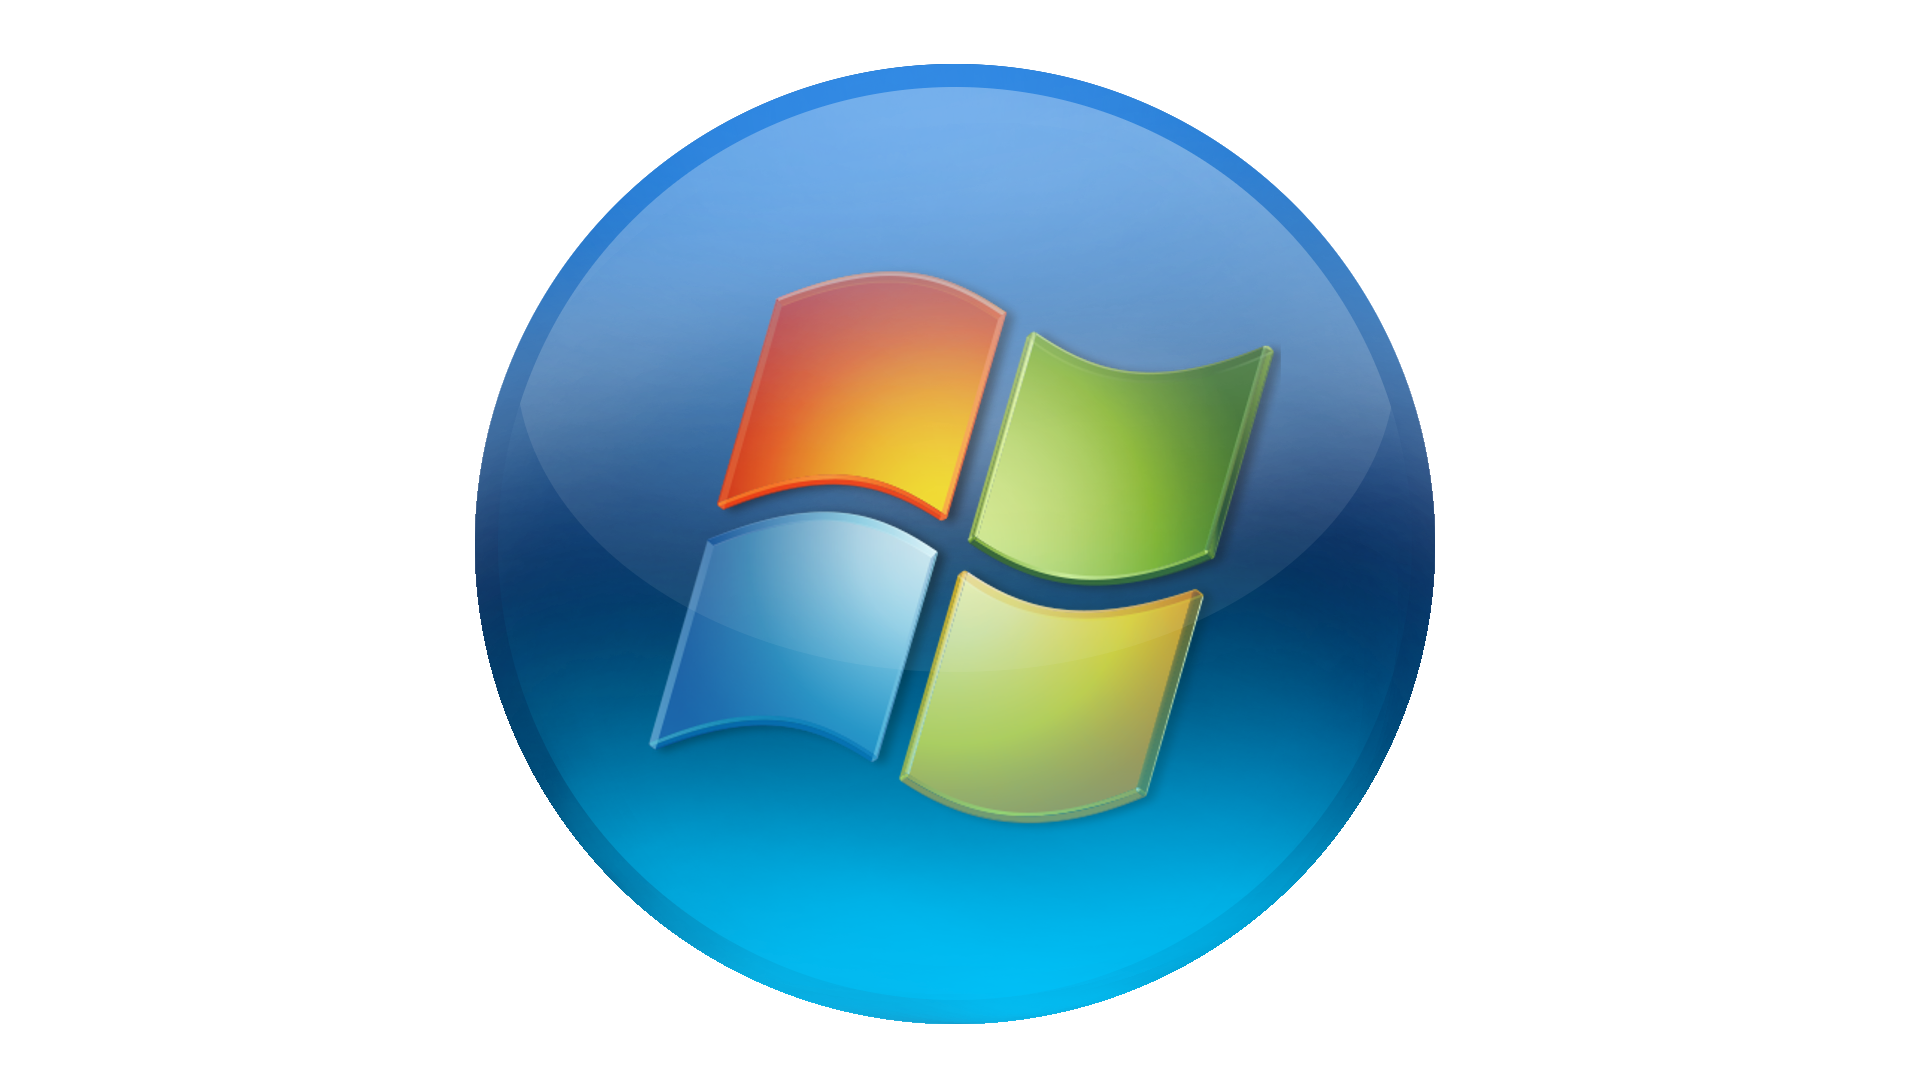 windows vista logo recreation hd by architechi on deviantart